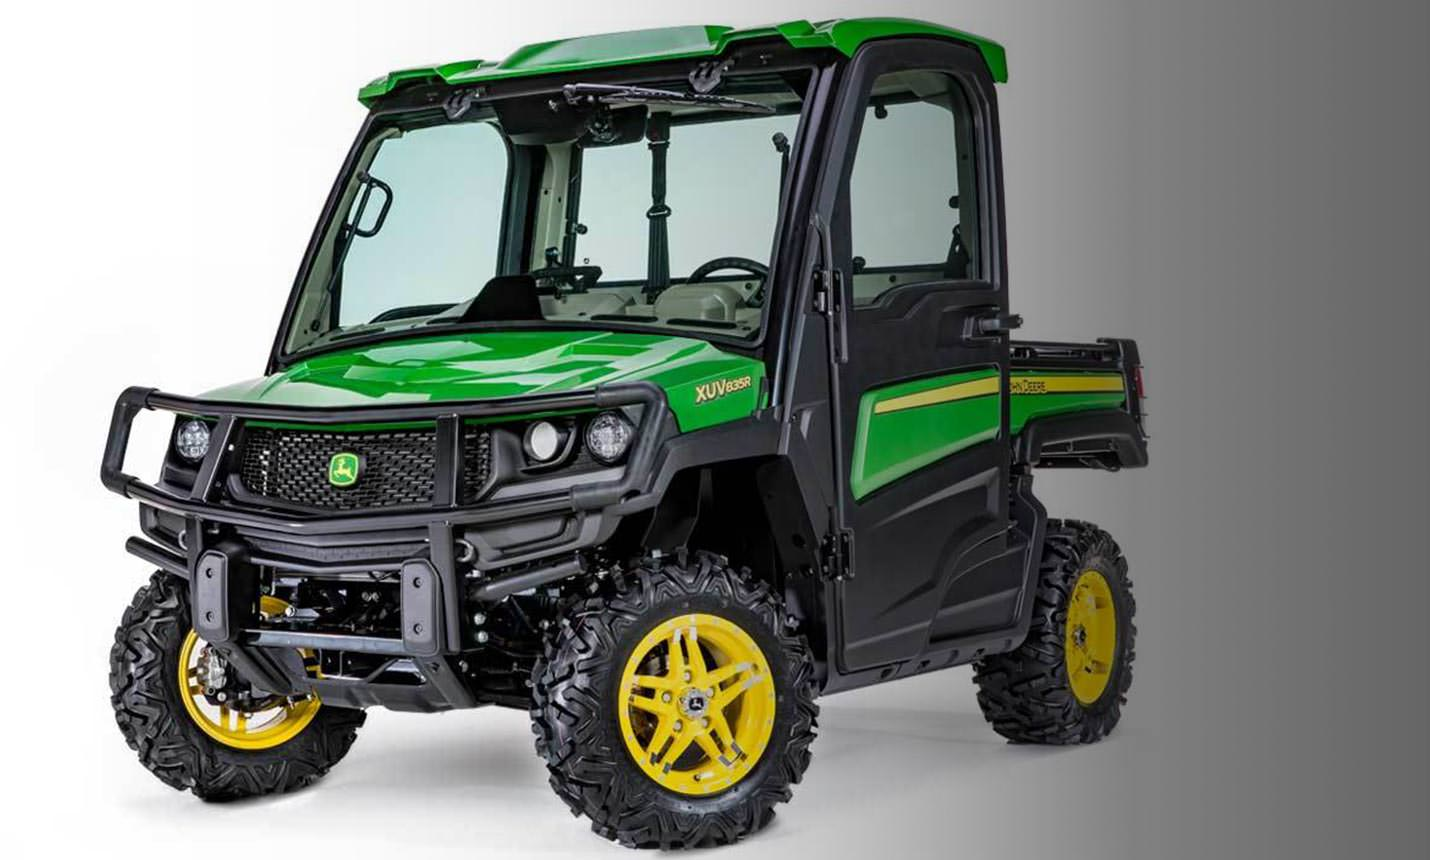 John Deere 835r >> John Deere 2018 Gator XUV835 & XUV865 Models | New John Deere Utility Vehicle | Utility Vehicles